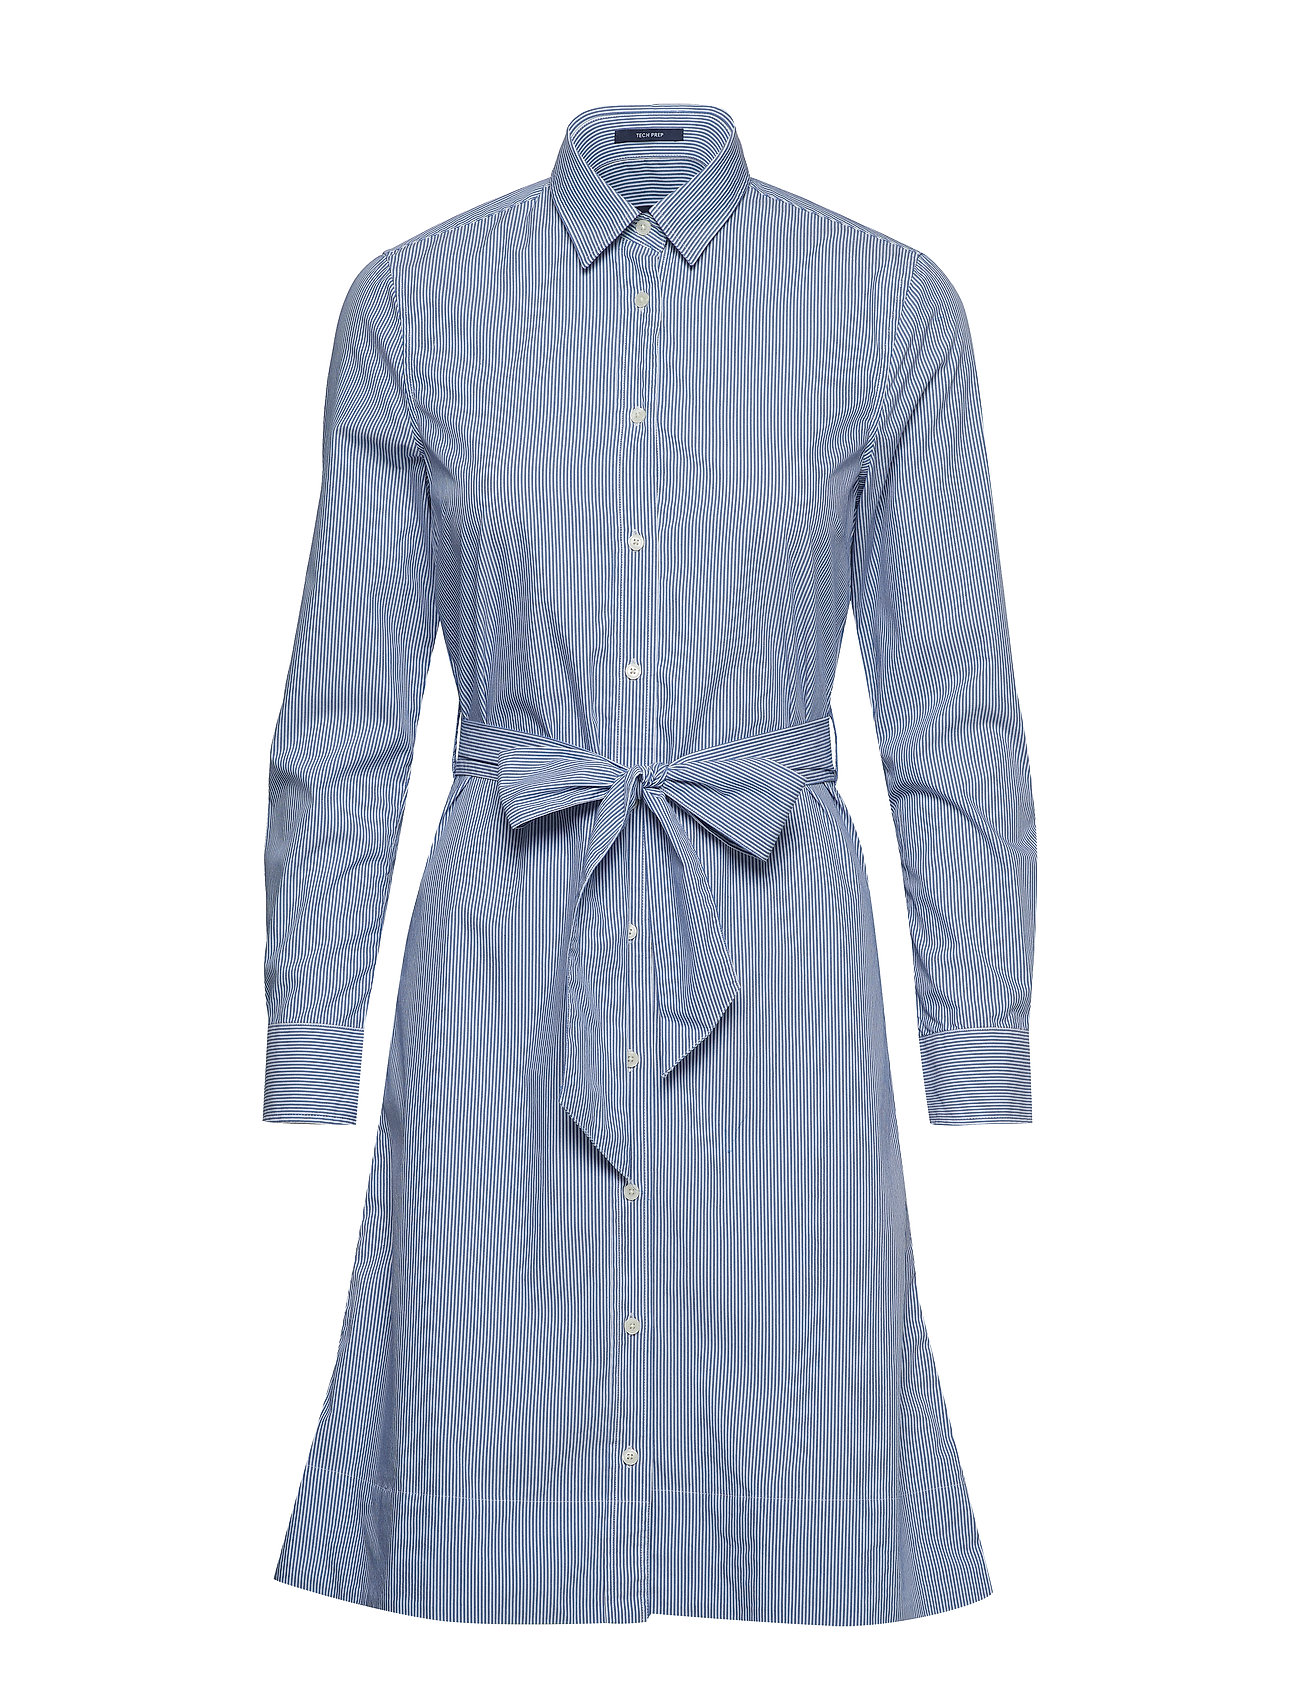 GANT O1. TP FINE STRIPED SHIRT DRESS - NAUTICAL BLUE